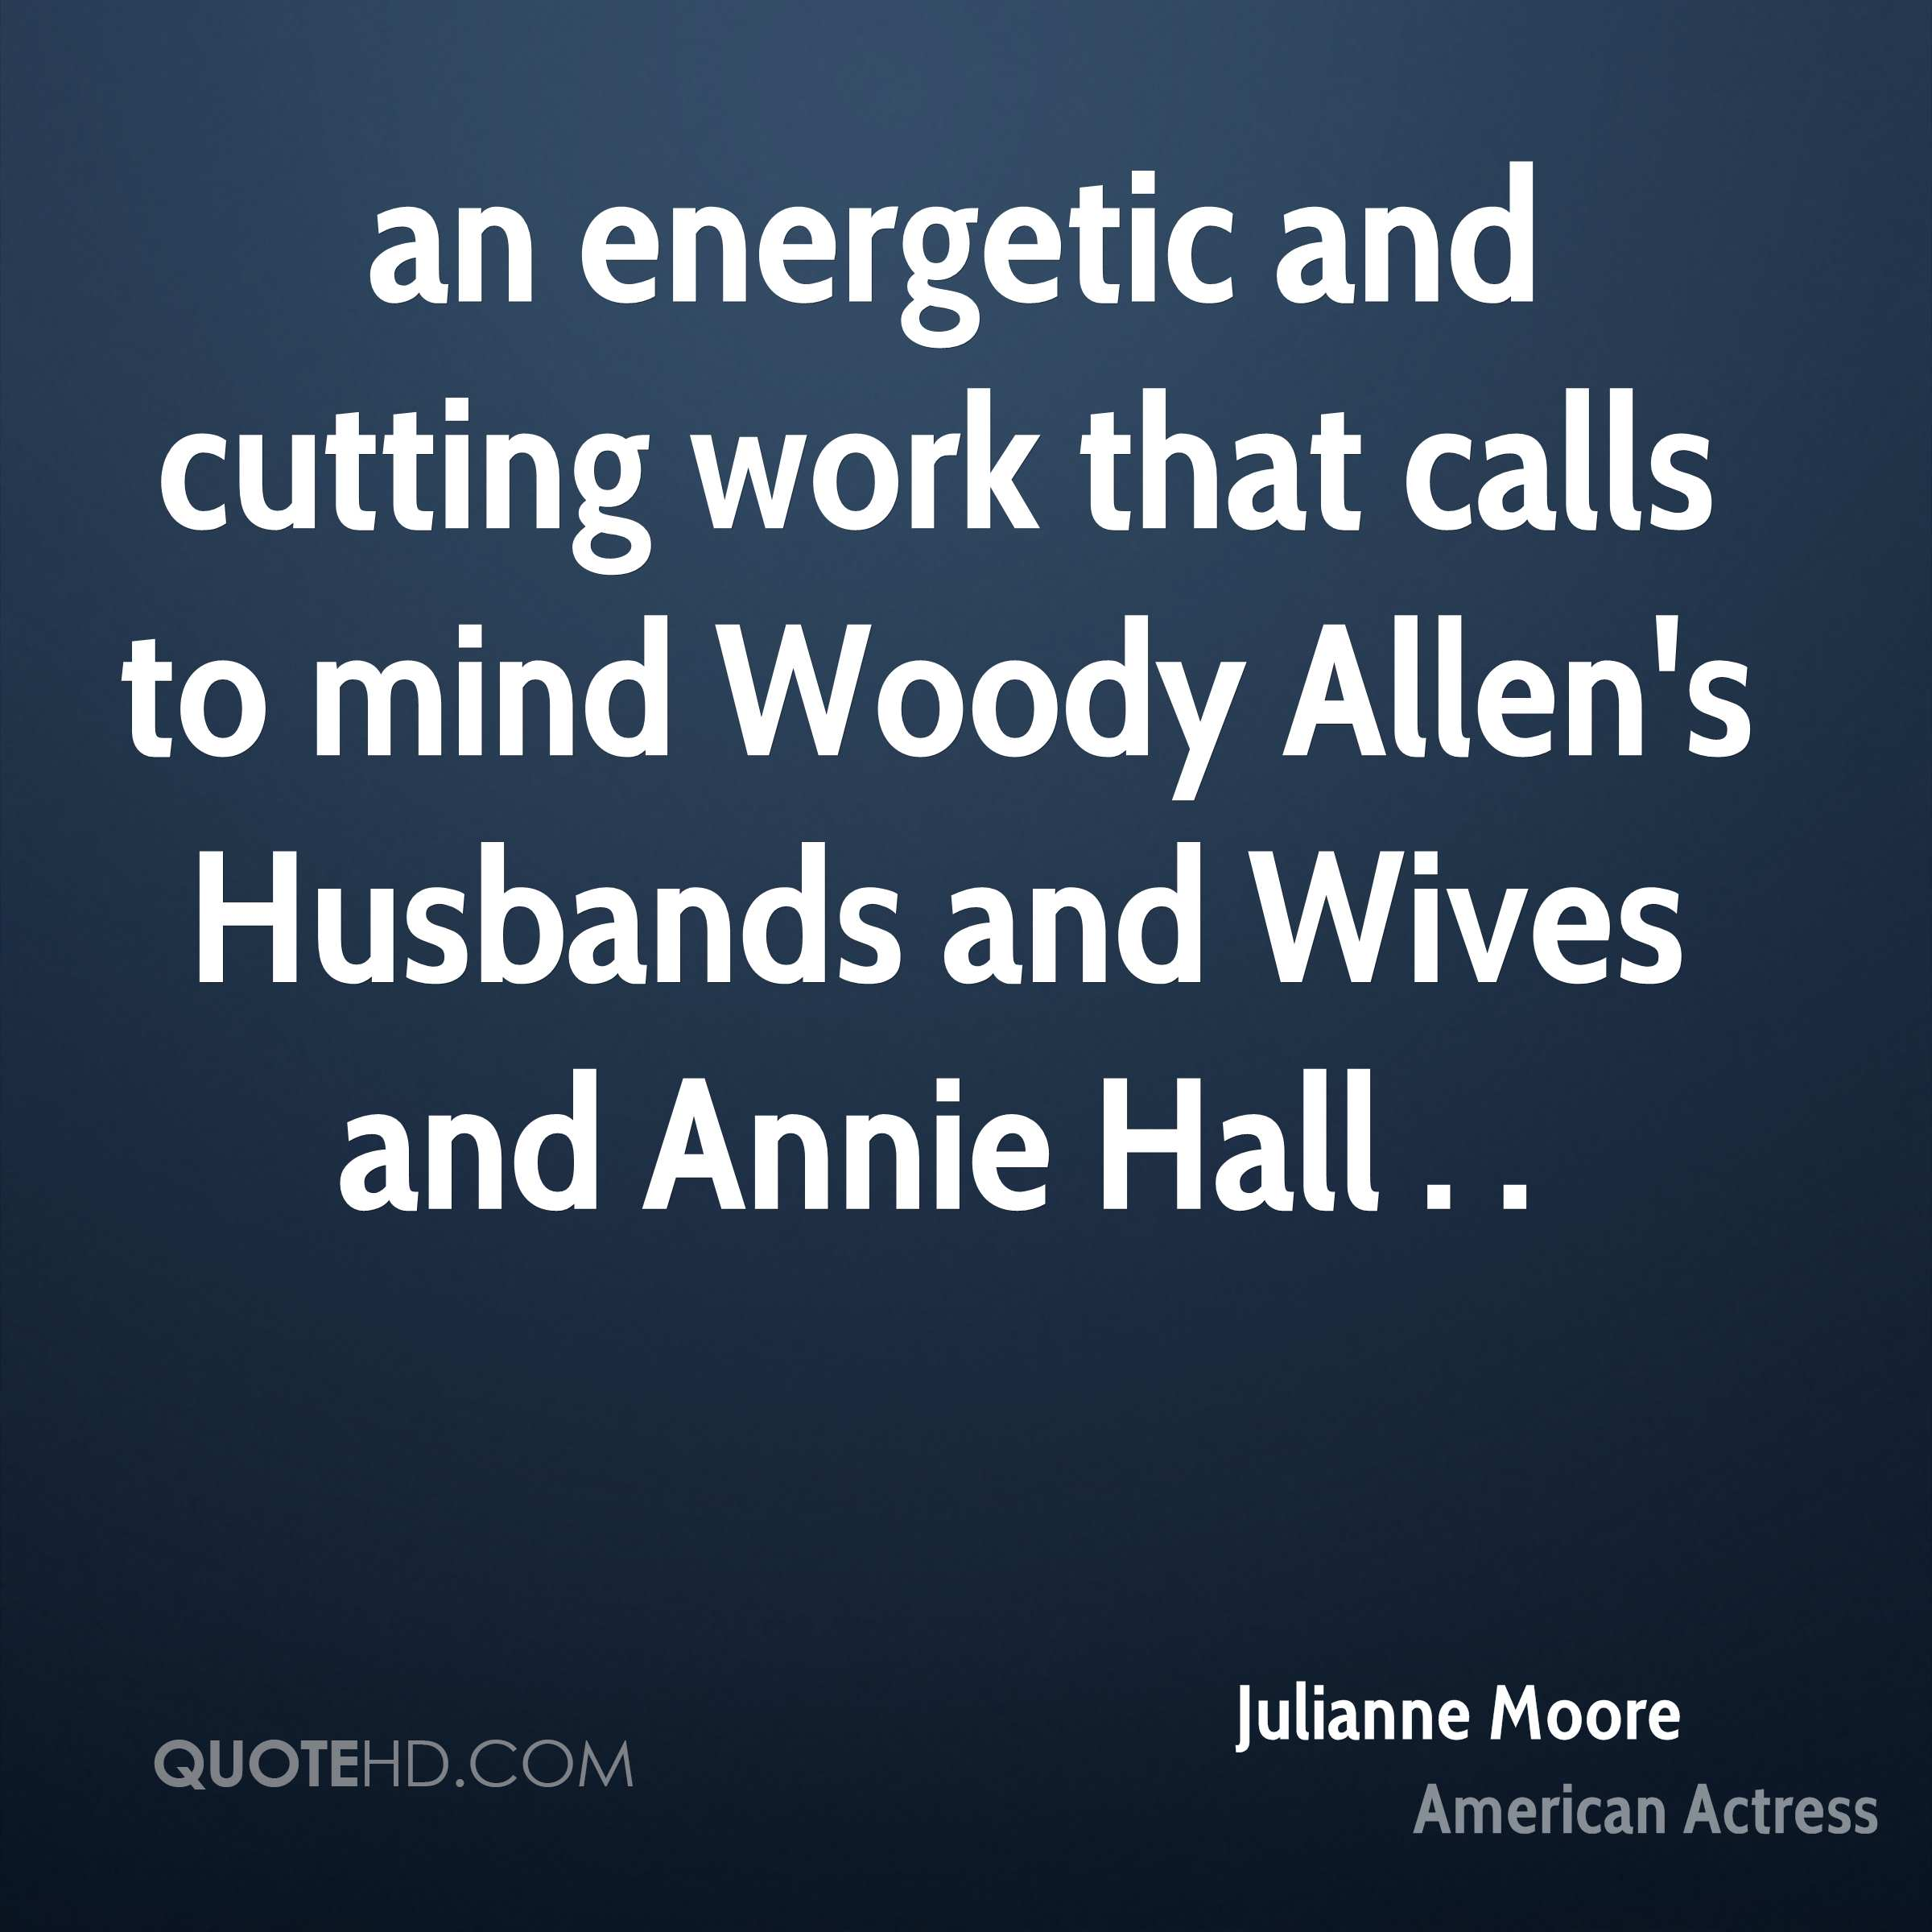 an energetic and cutting work that calls to mind Woody Allen's Husbands and Wives and Annie Hall . .